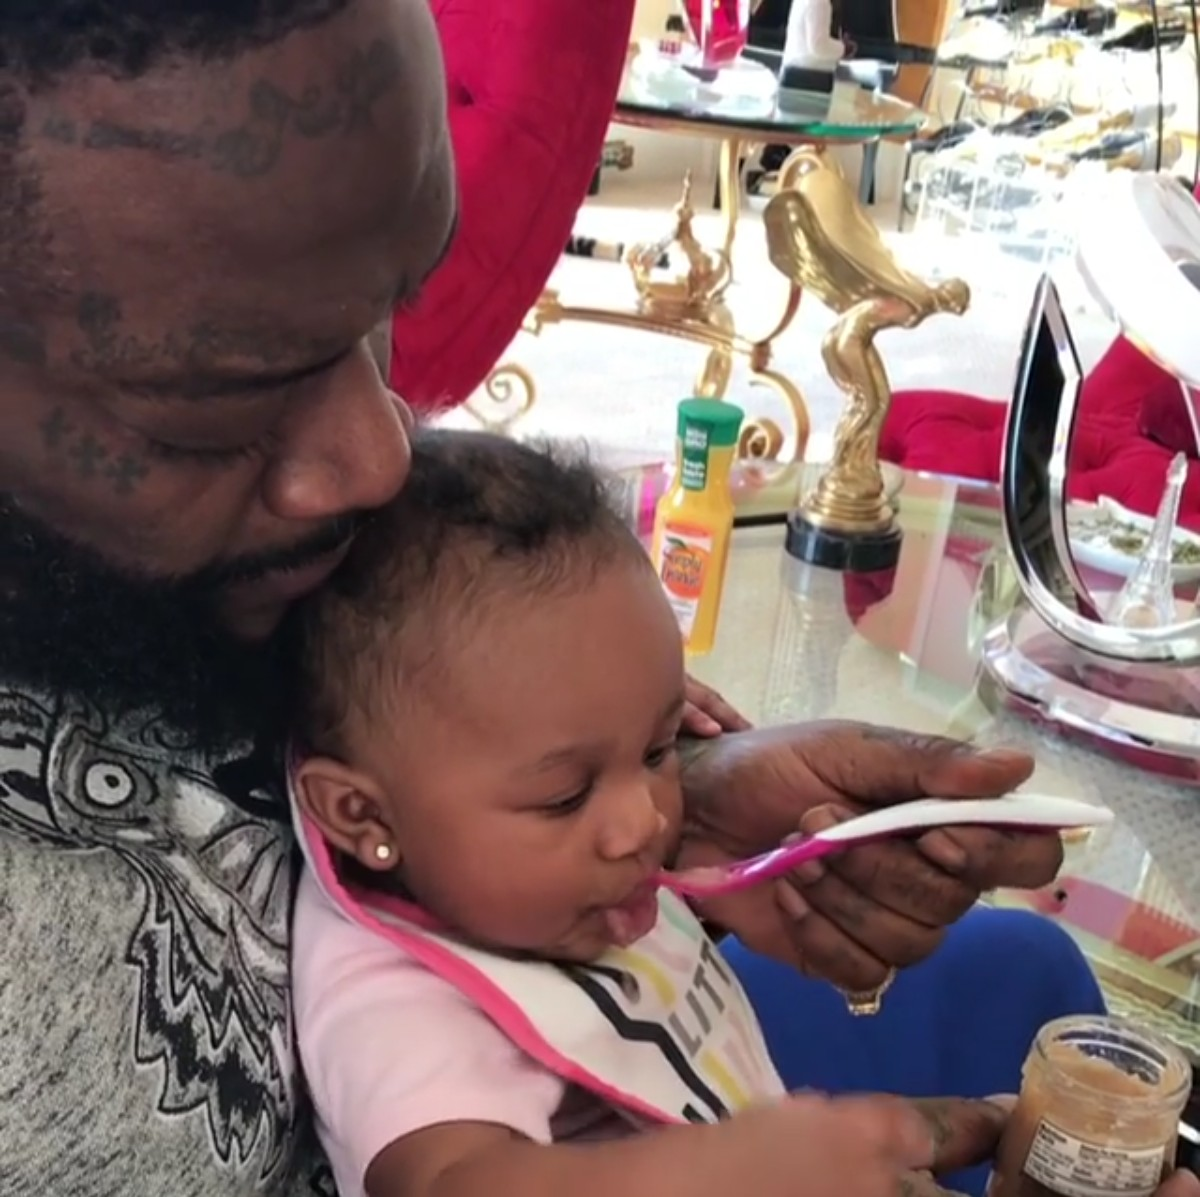 Rick Ross Daughter Hermes Eating From A Spoon For The First Time (3)